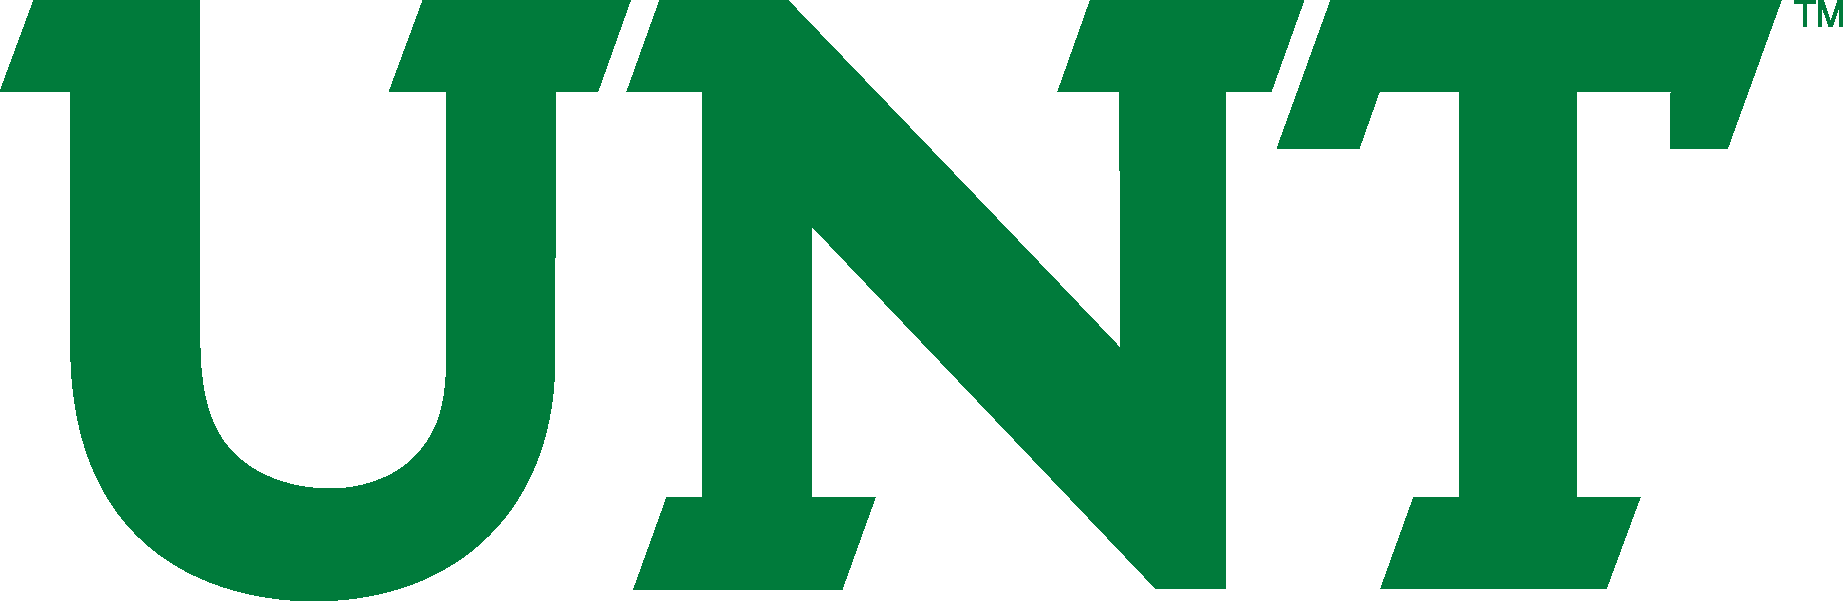 unt-university-of-north-texas-logo.png